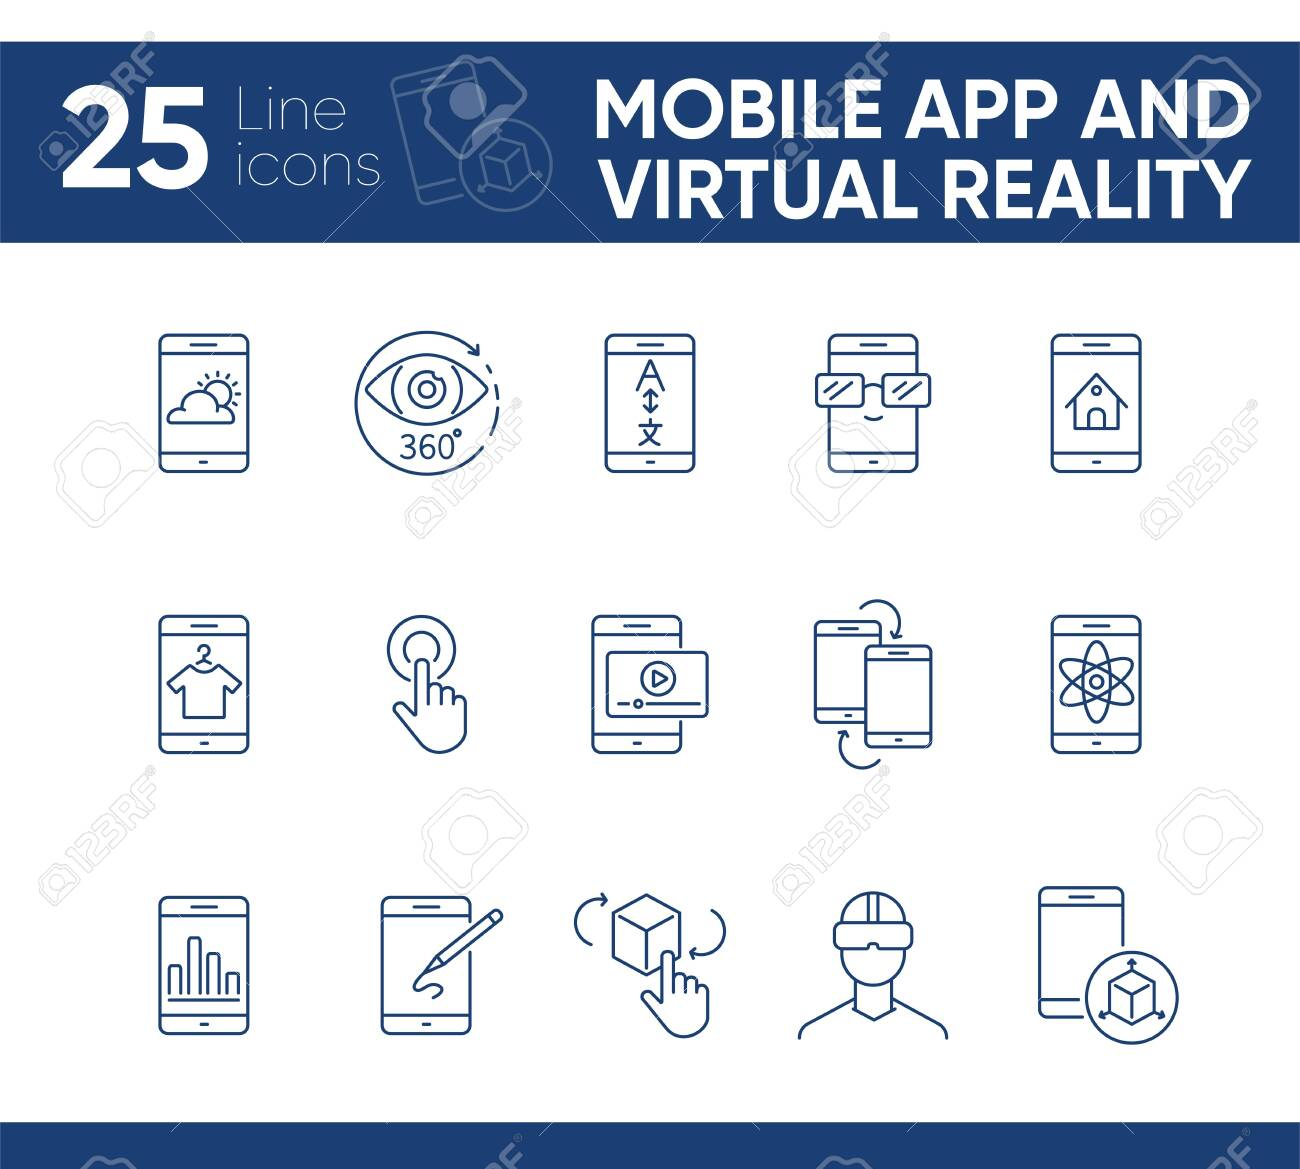 Mobile app and virtual reality line icon set  Technology concept